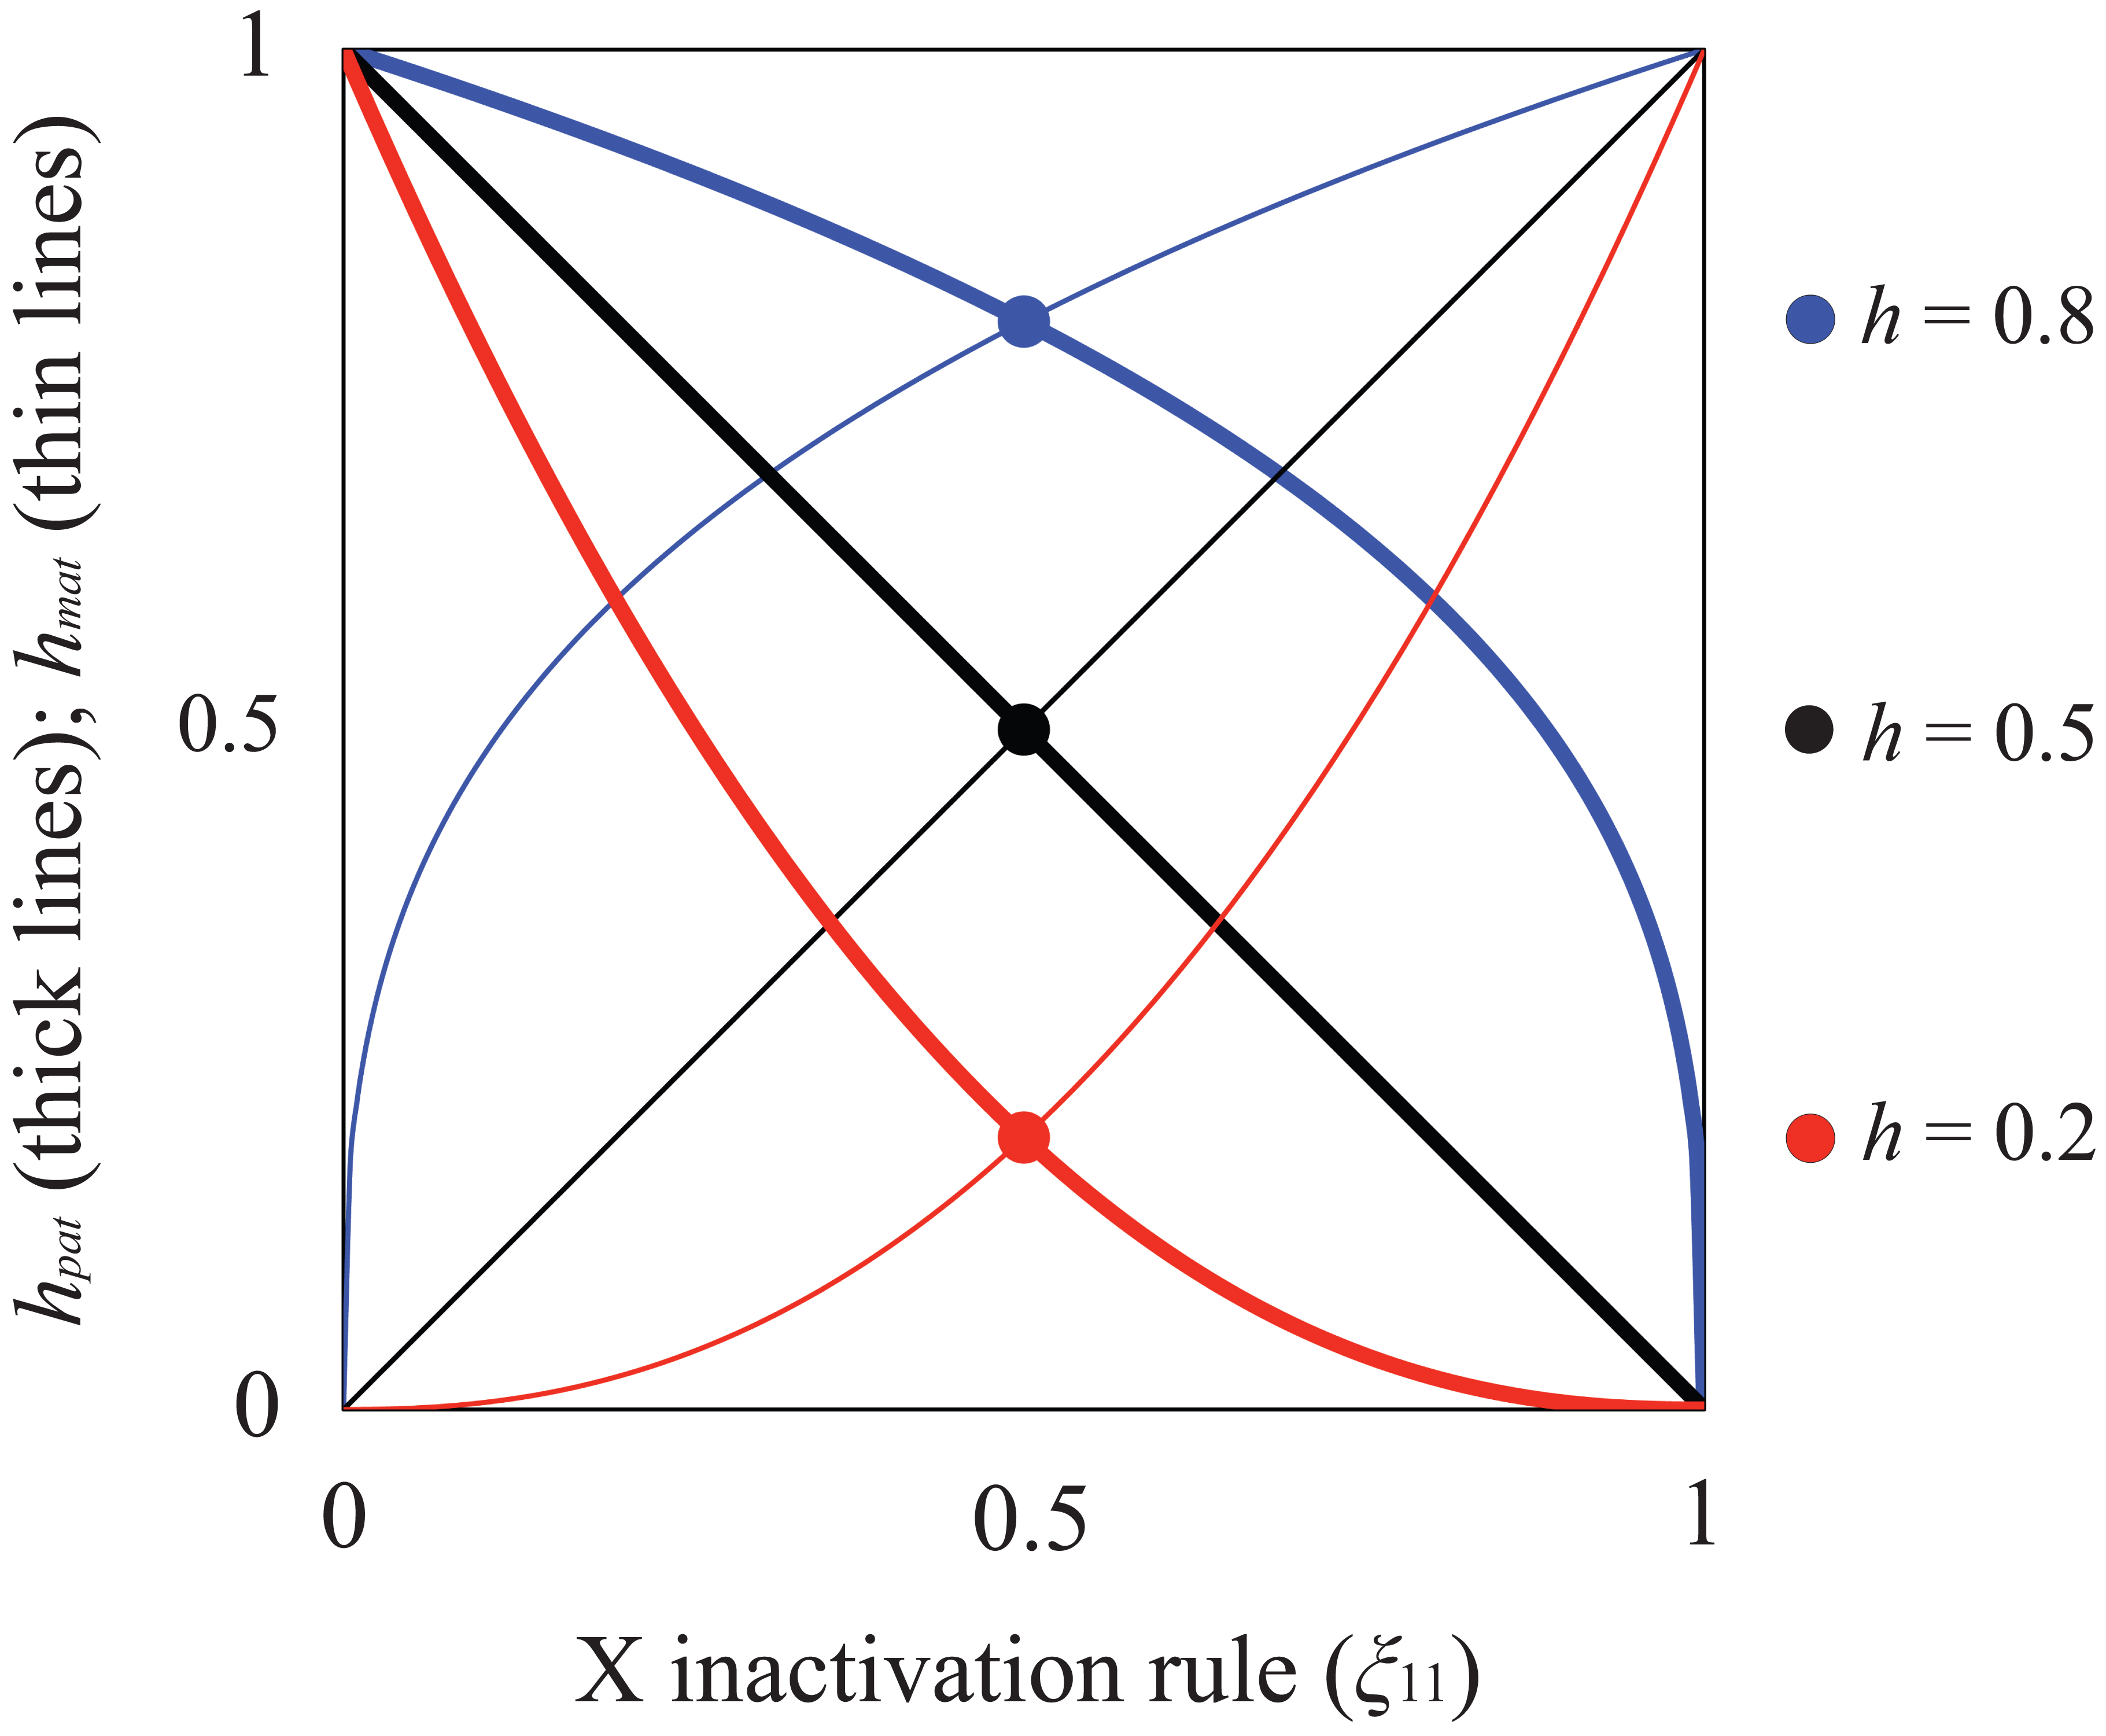 Relationship between X inactivation rule and parent-of-origin dominance coefficients (<b><i>h<sub>mat</sub></i></b><b>, </b><b><i>h<sub>pat</sub></i></b><b>; see </b><em class=&quot;ref&quot;><b>Table 1</b></em><b>).</b>